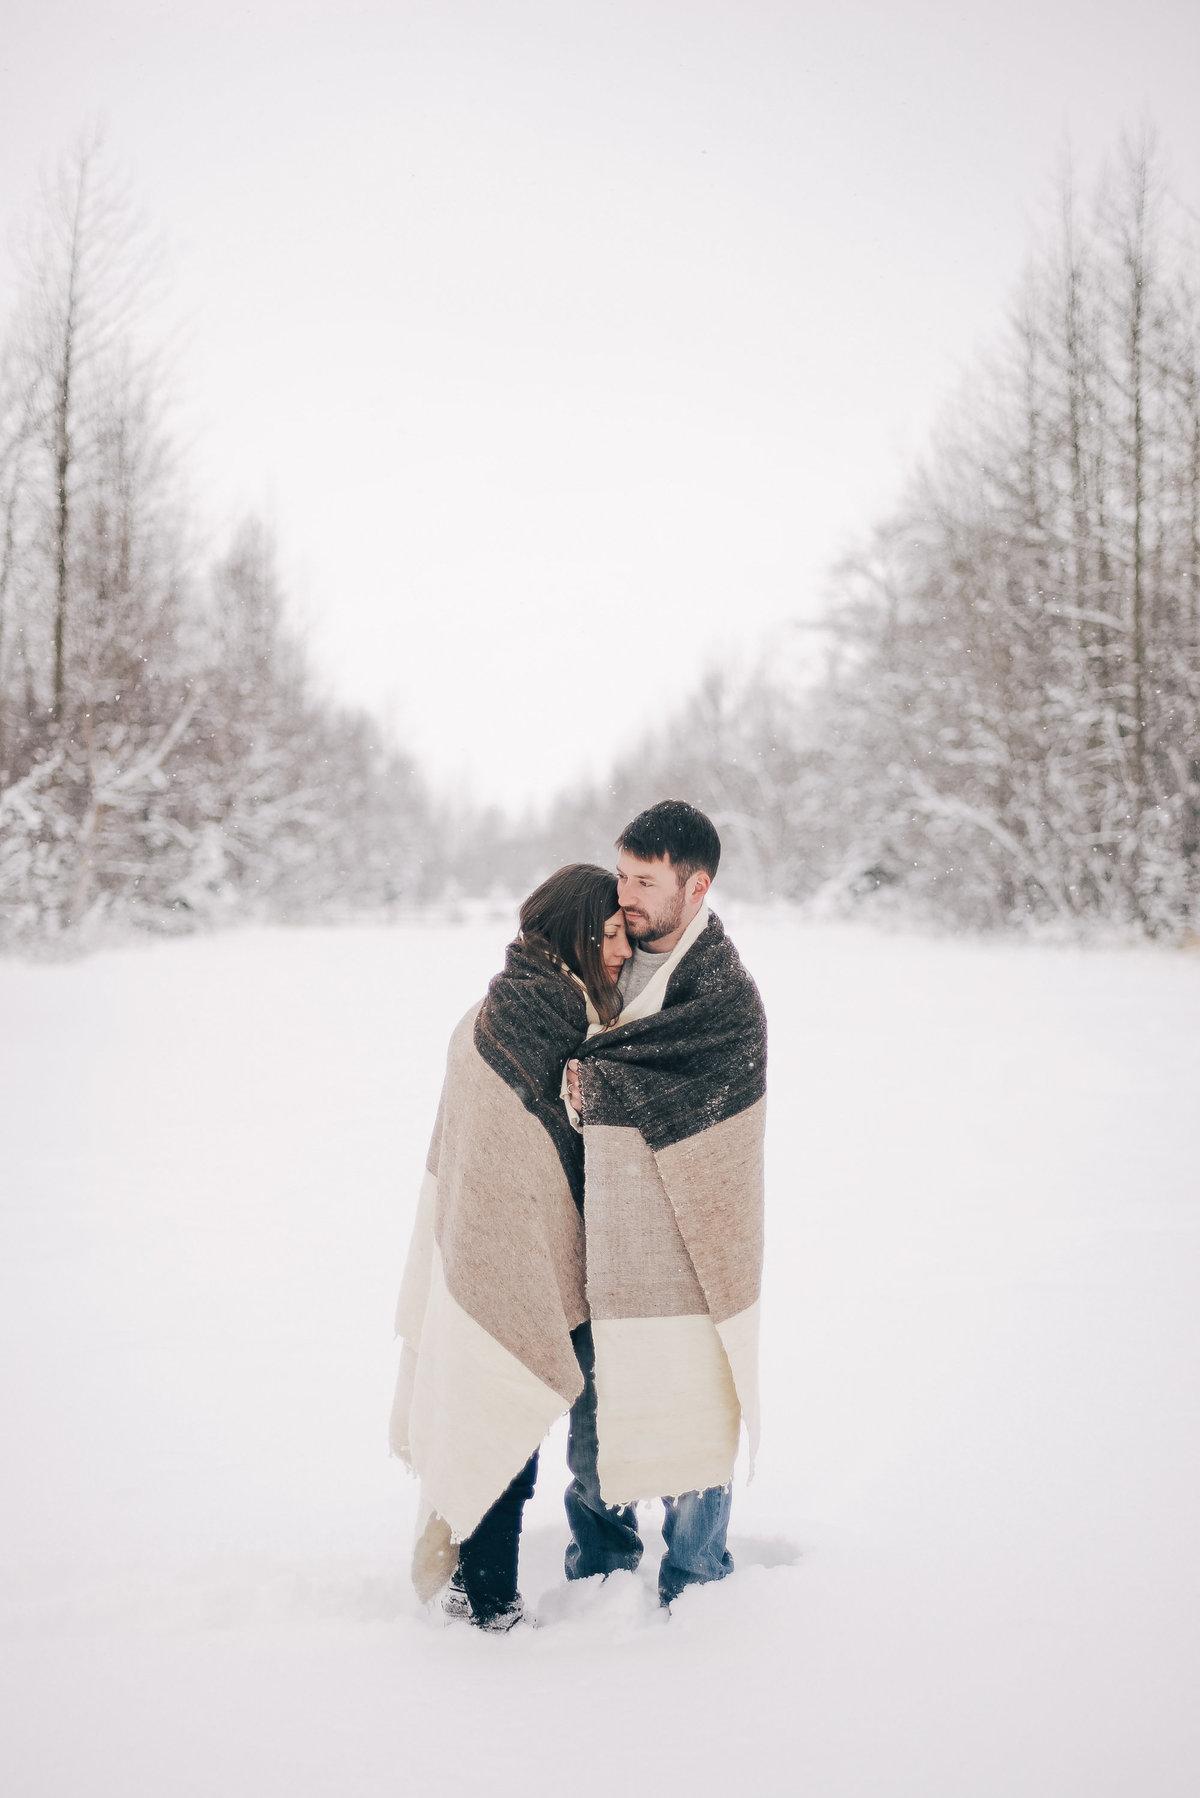 009_Erica Rose Photography_Anchorage Engagement Photographer